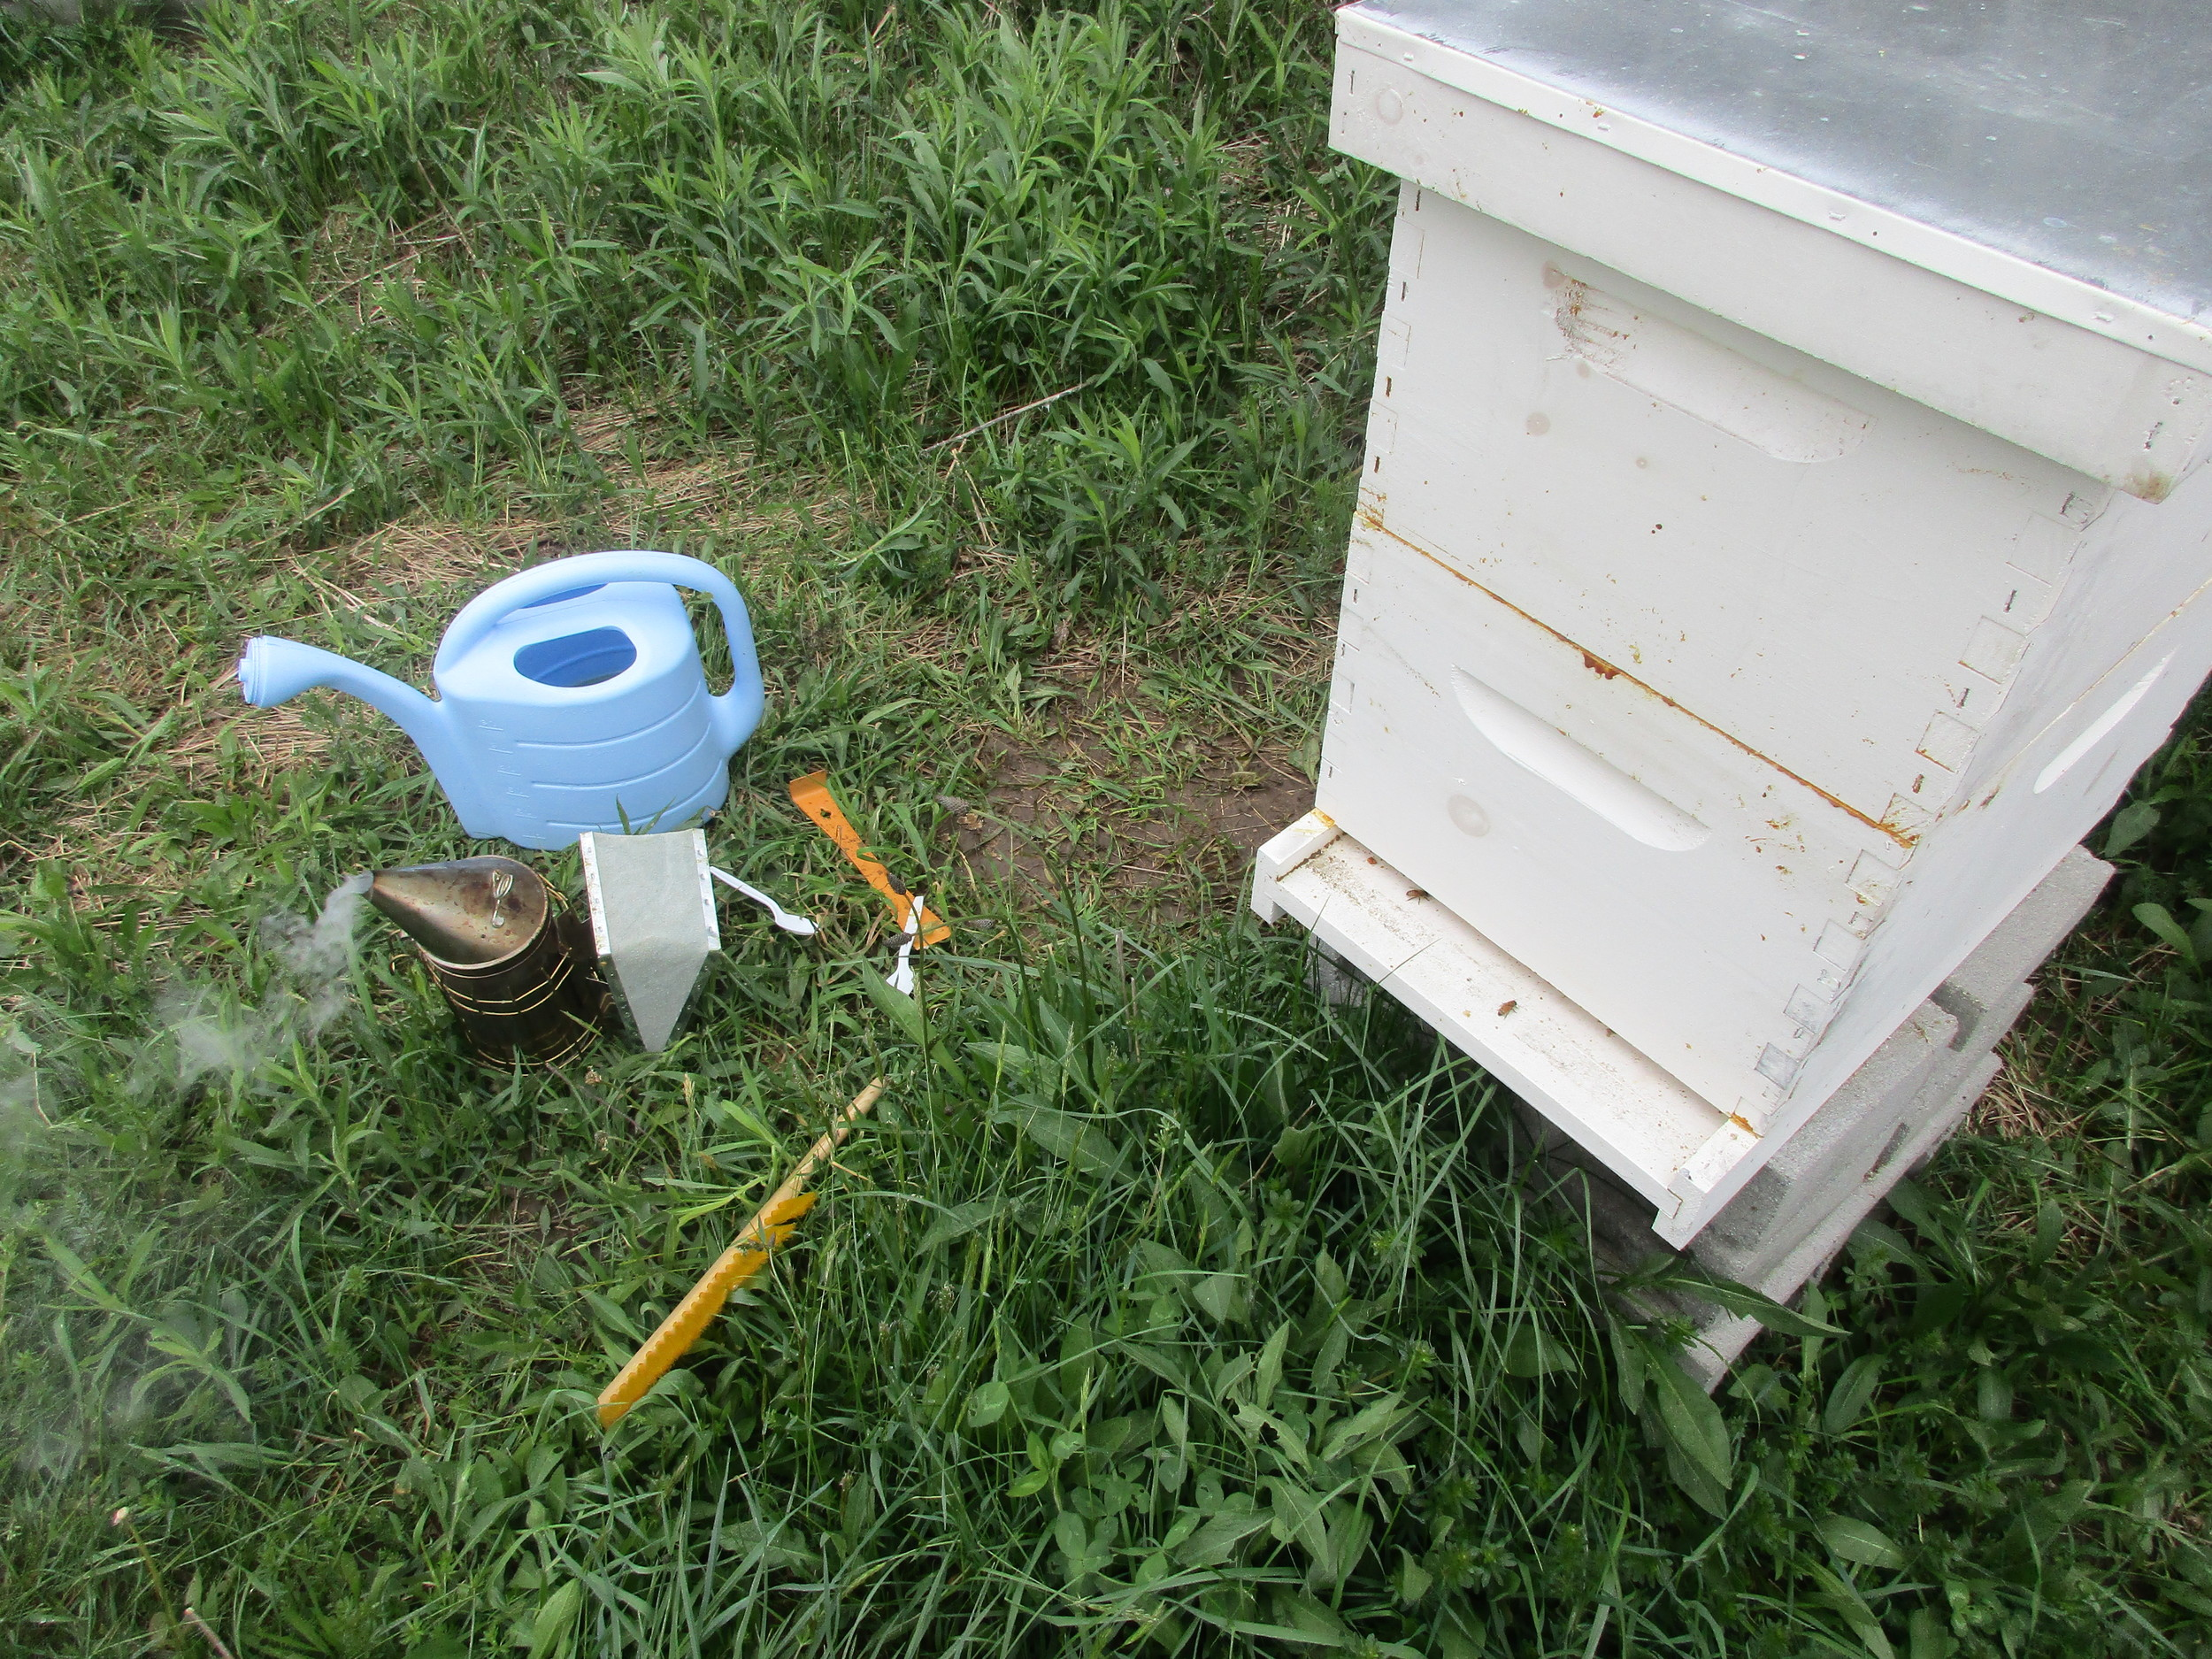 T hursday May 5th . Hive 2, just topped up with sugar syrup on a break in the rain. It was a cold day, and the bees were not out.